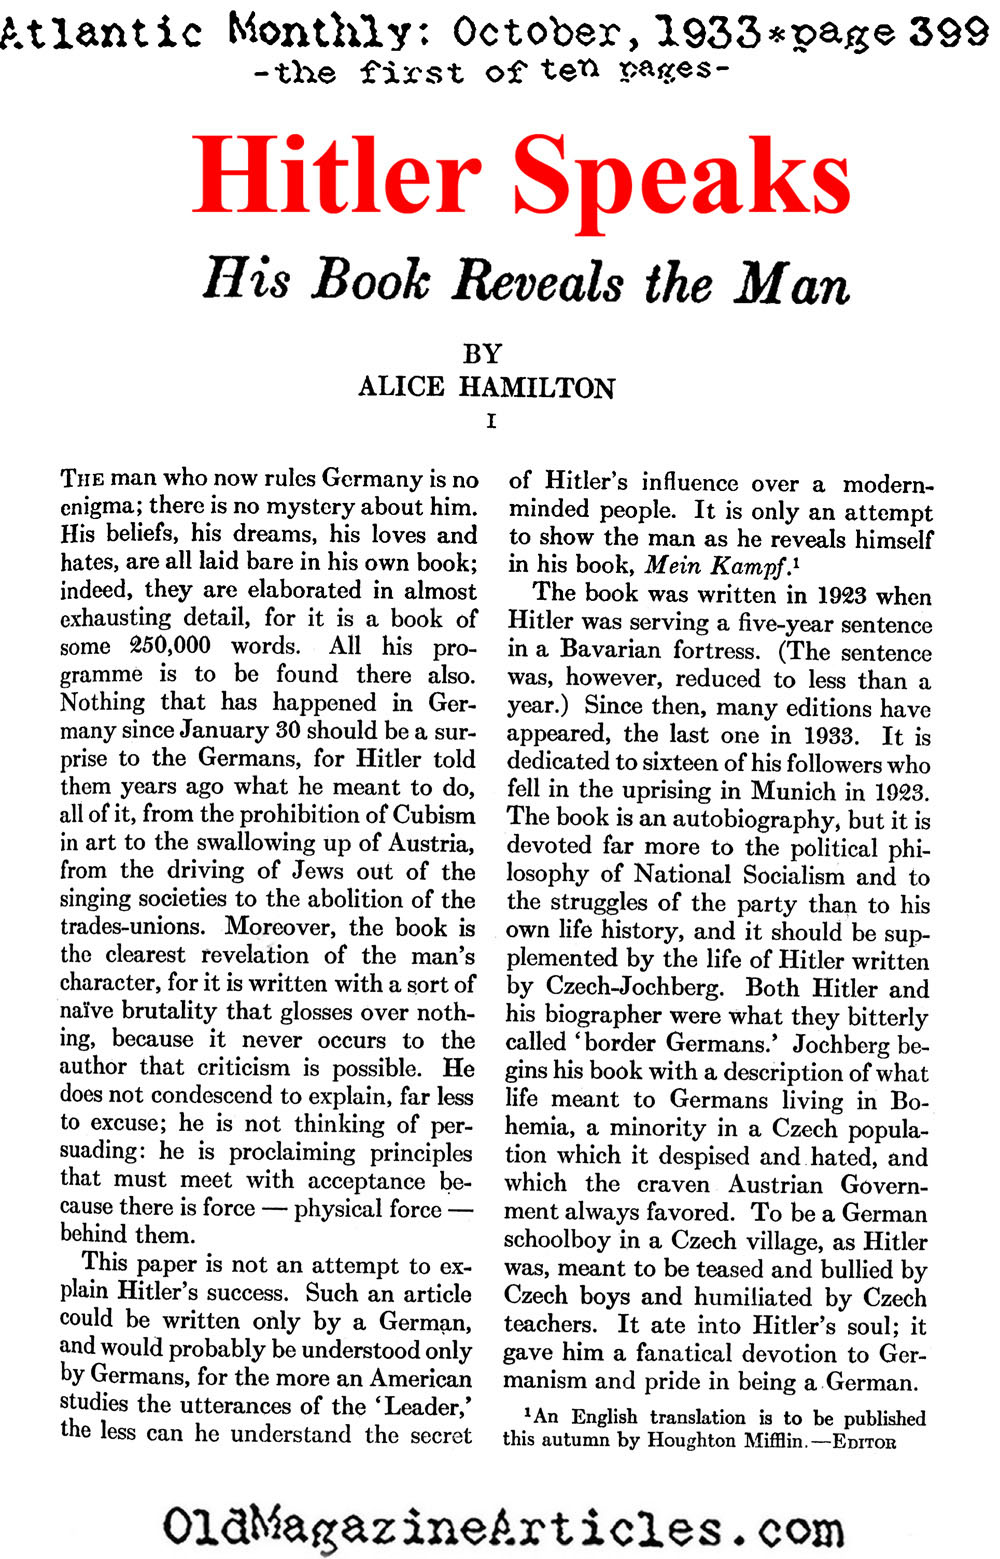 The Review of Mein Kampf (Atlantic Monthly, 1933)